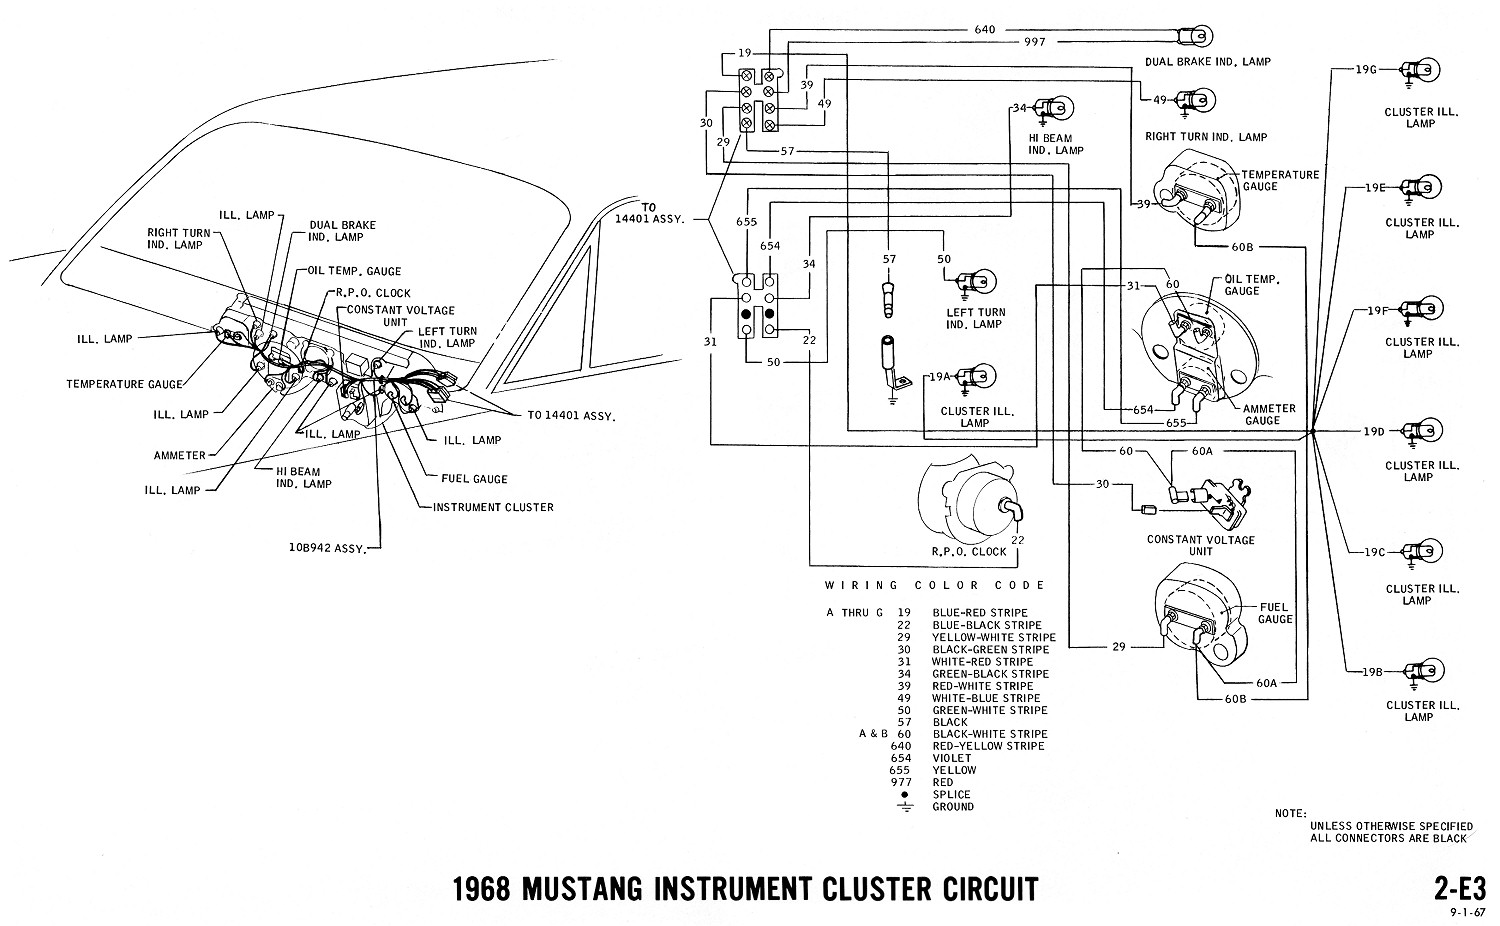 E3 1968 mustang wiring diagrams evolving software 67 mustang dash wiring diagram at virtualis.co